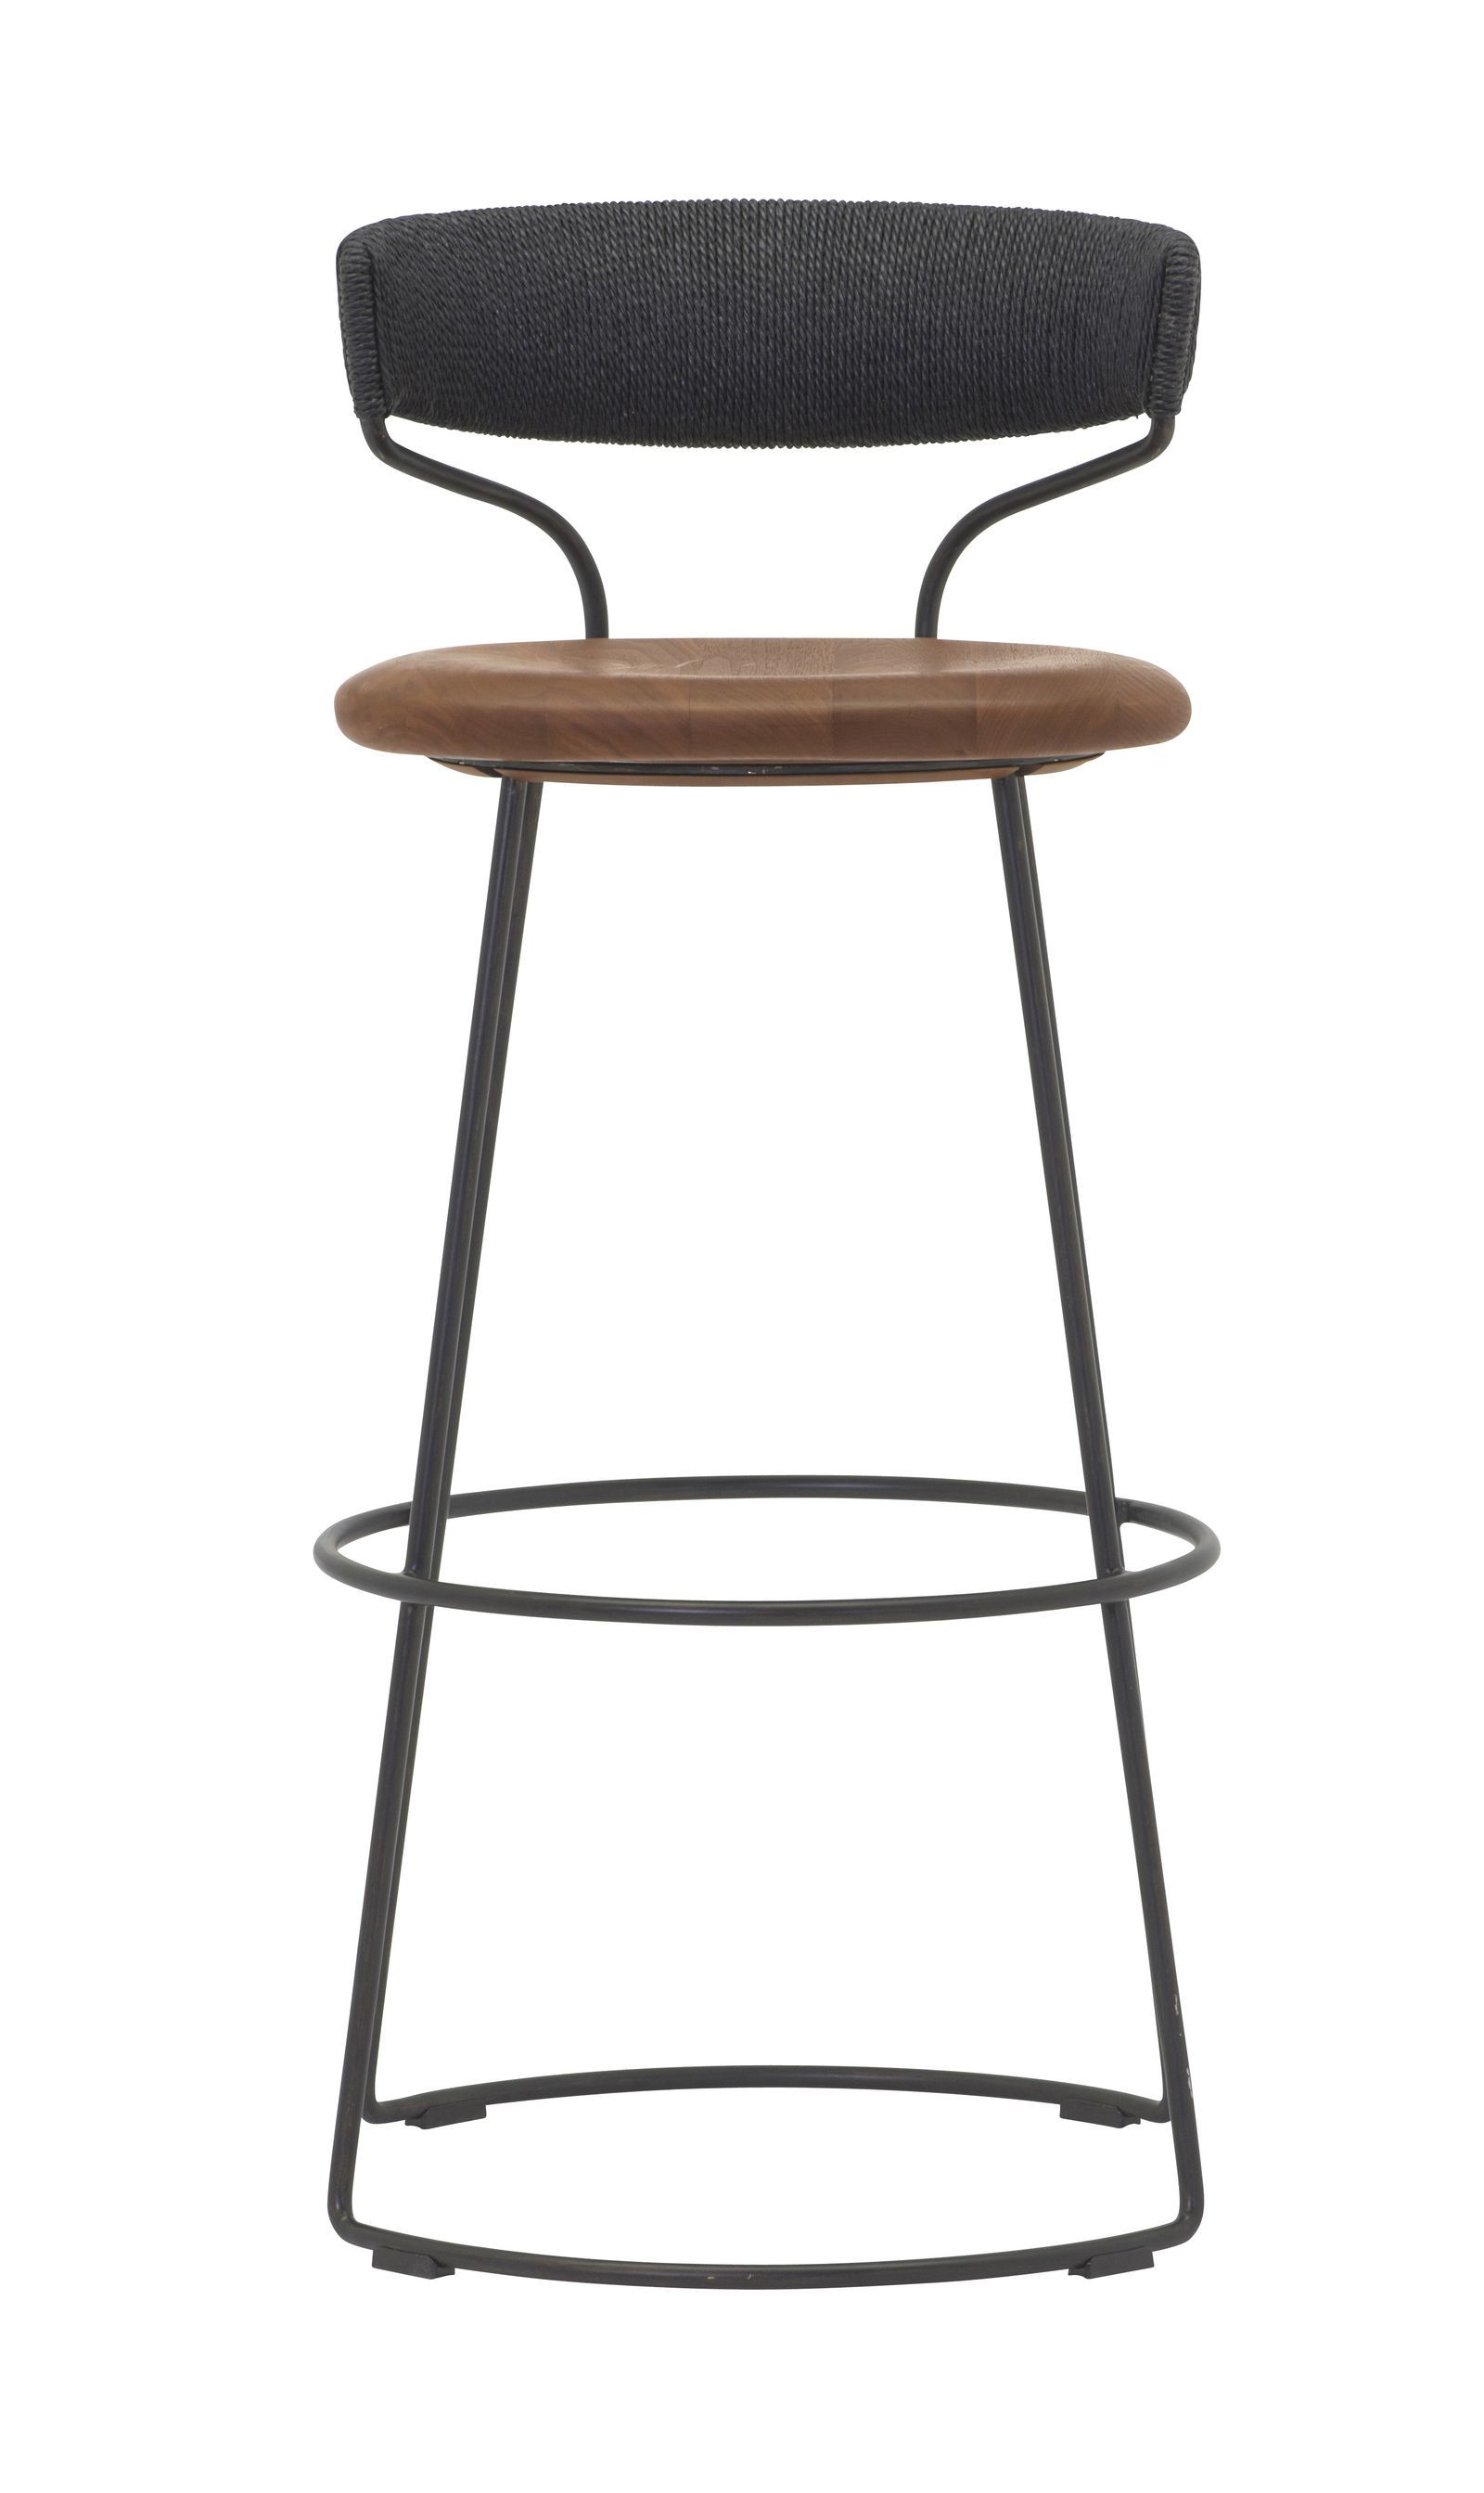 Kitchen Stools For Sale The 60 Best Places To Buy Furniture Online Furniture Swivel